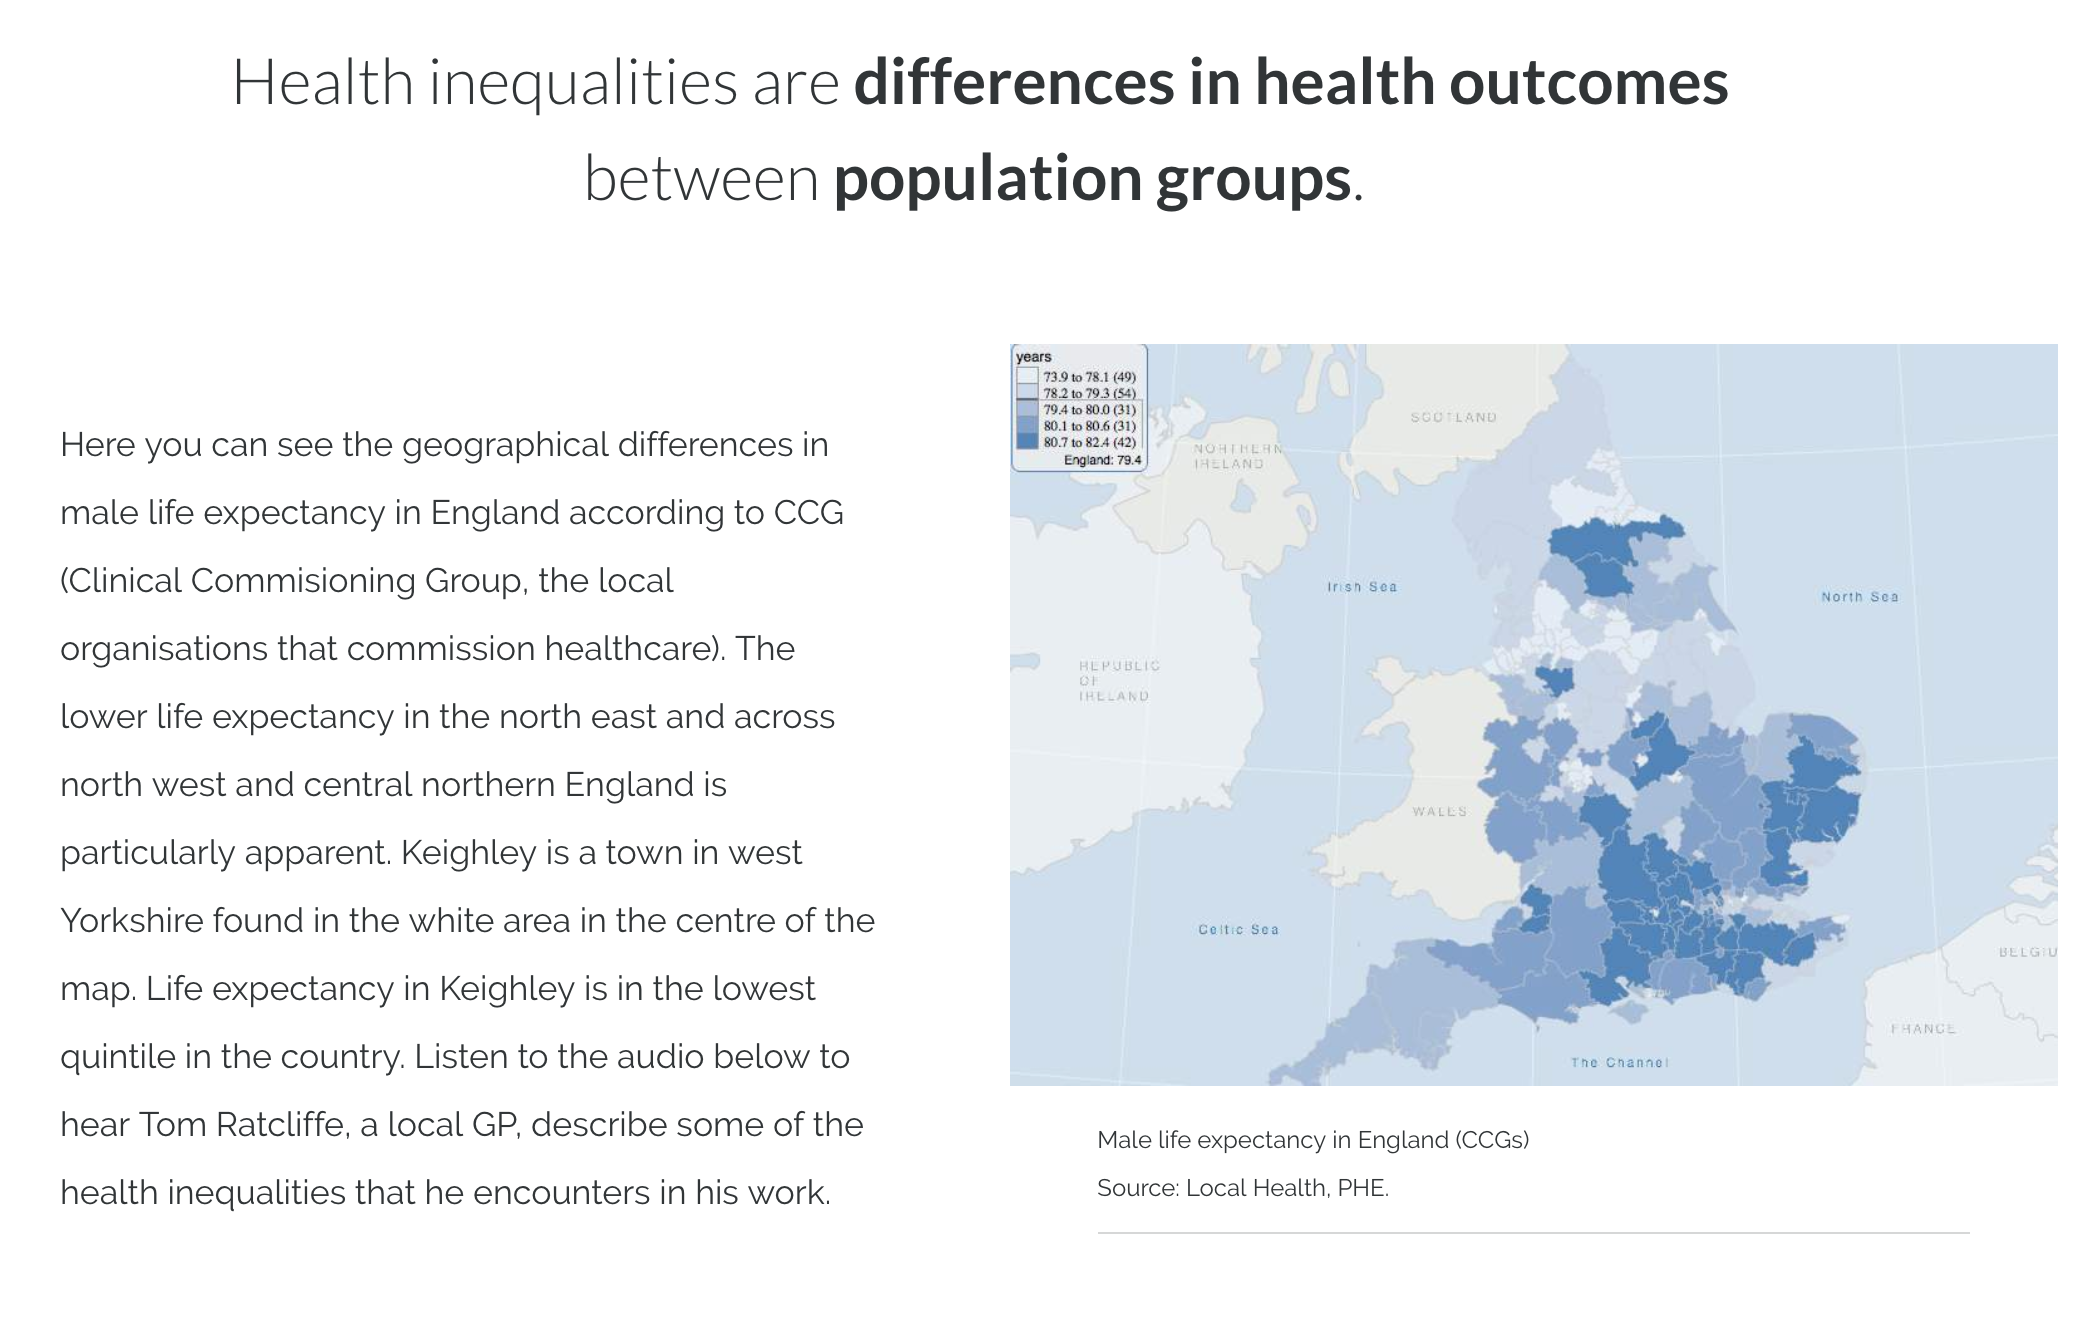 Health Inequalities in Primary Care - This module offers an introduction to health inequalities, exploring the difference between equality and equity, the inverse care law, social determinants of health, and primary care's place in tackling health inequalities.